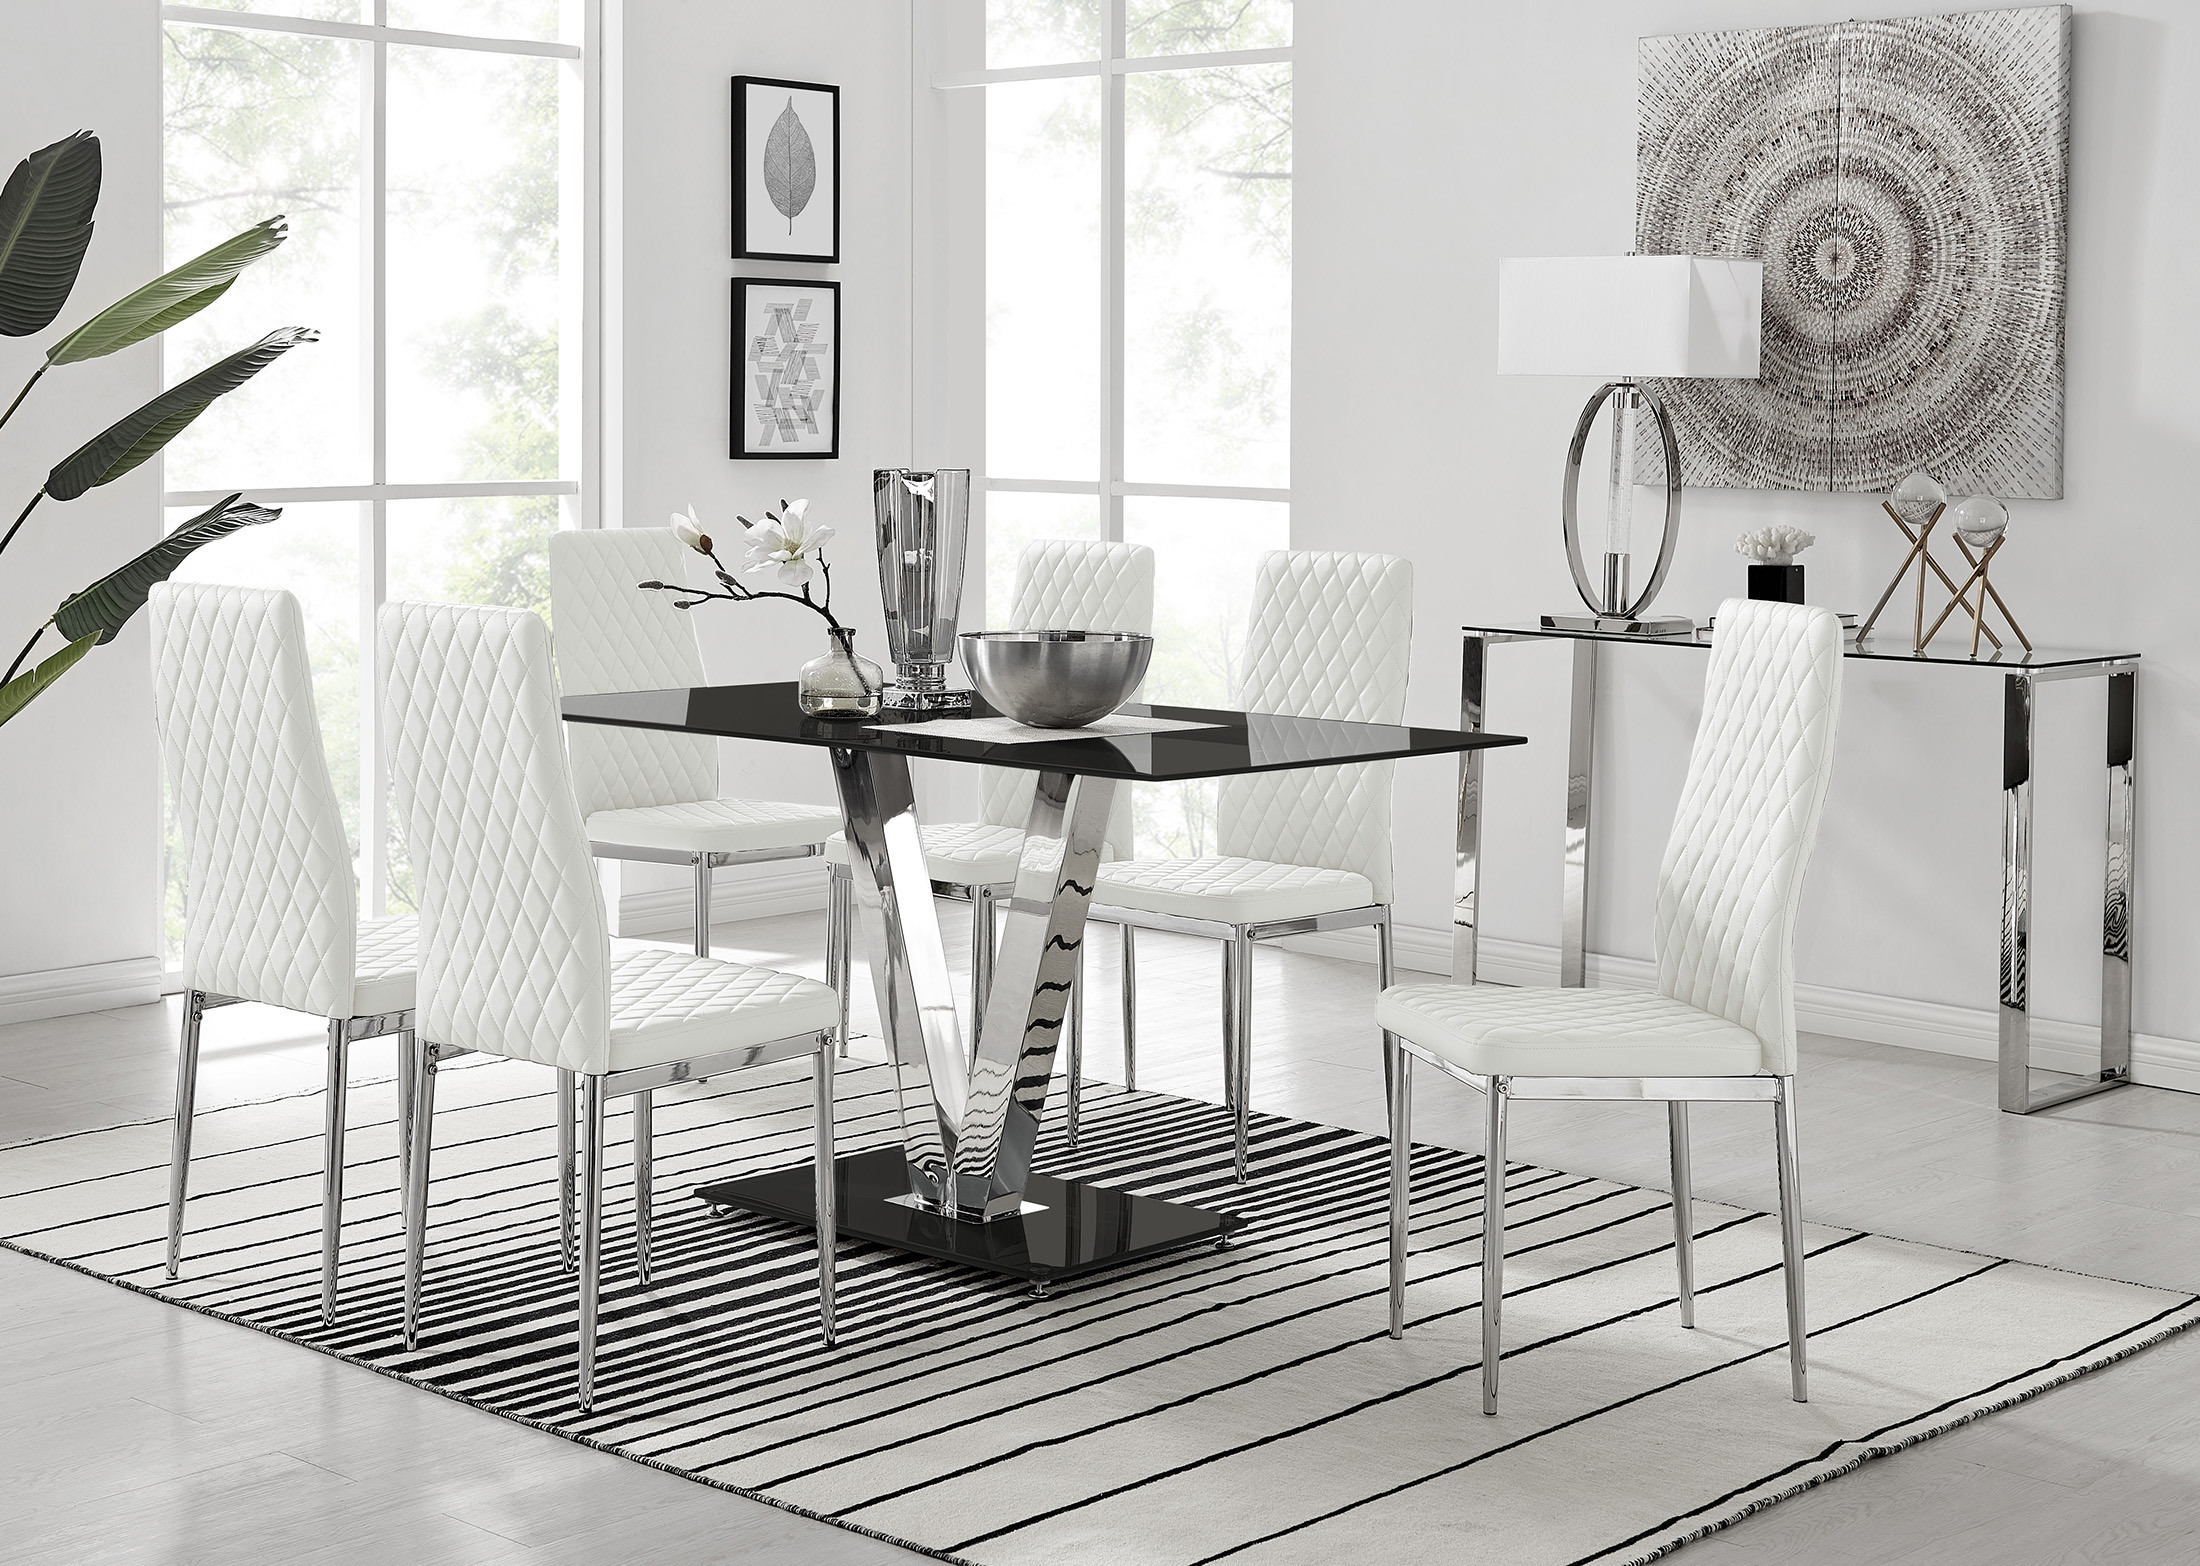 Dining Table 6 Milan Chairs, Black Dining Room Table